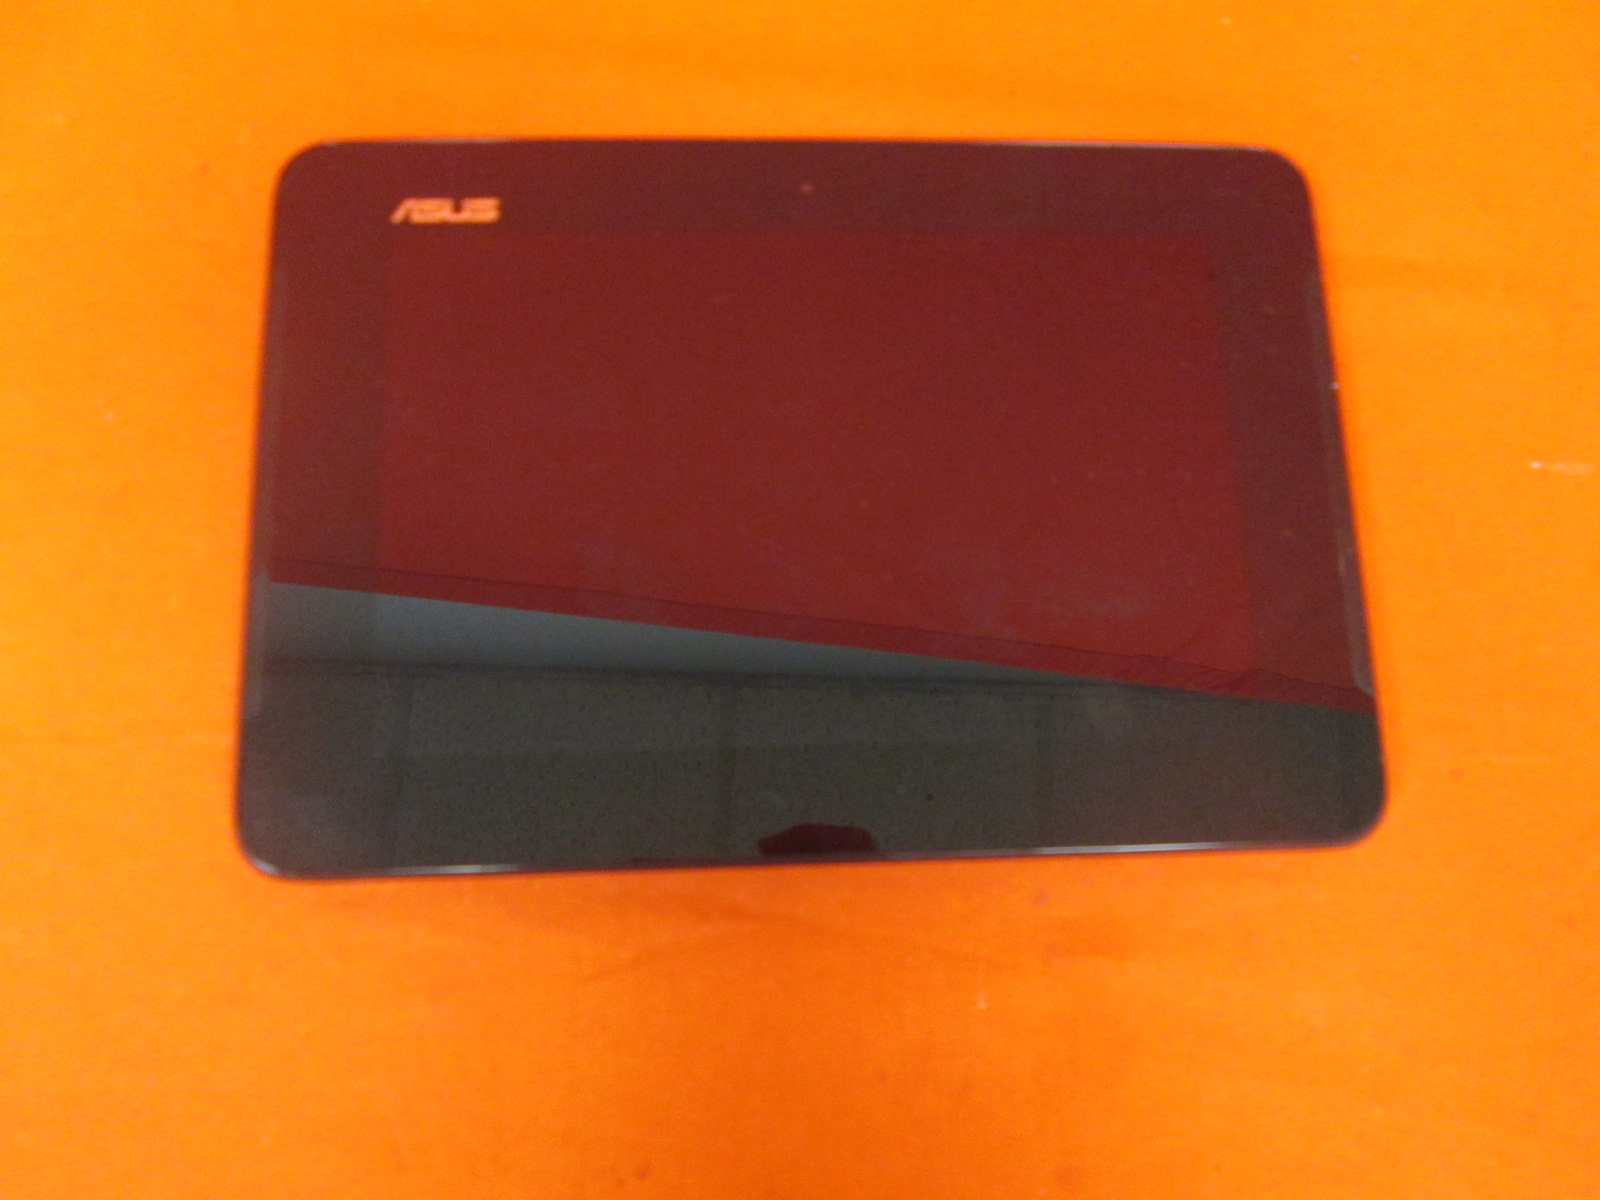 ASUS Padfone 2 Station Tablet Charging Dock Incomplete